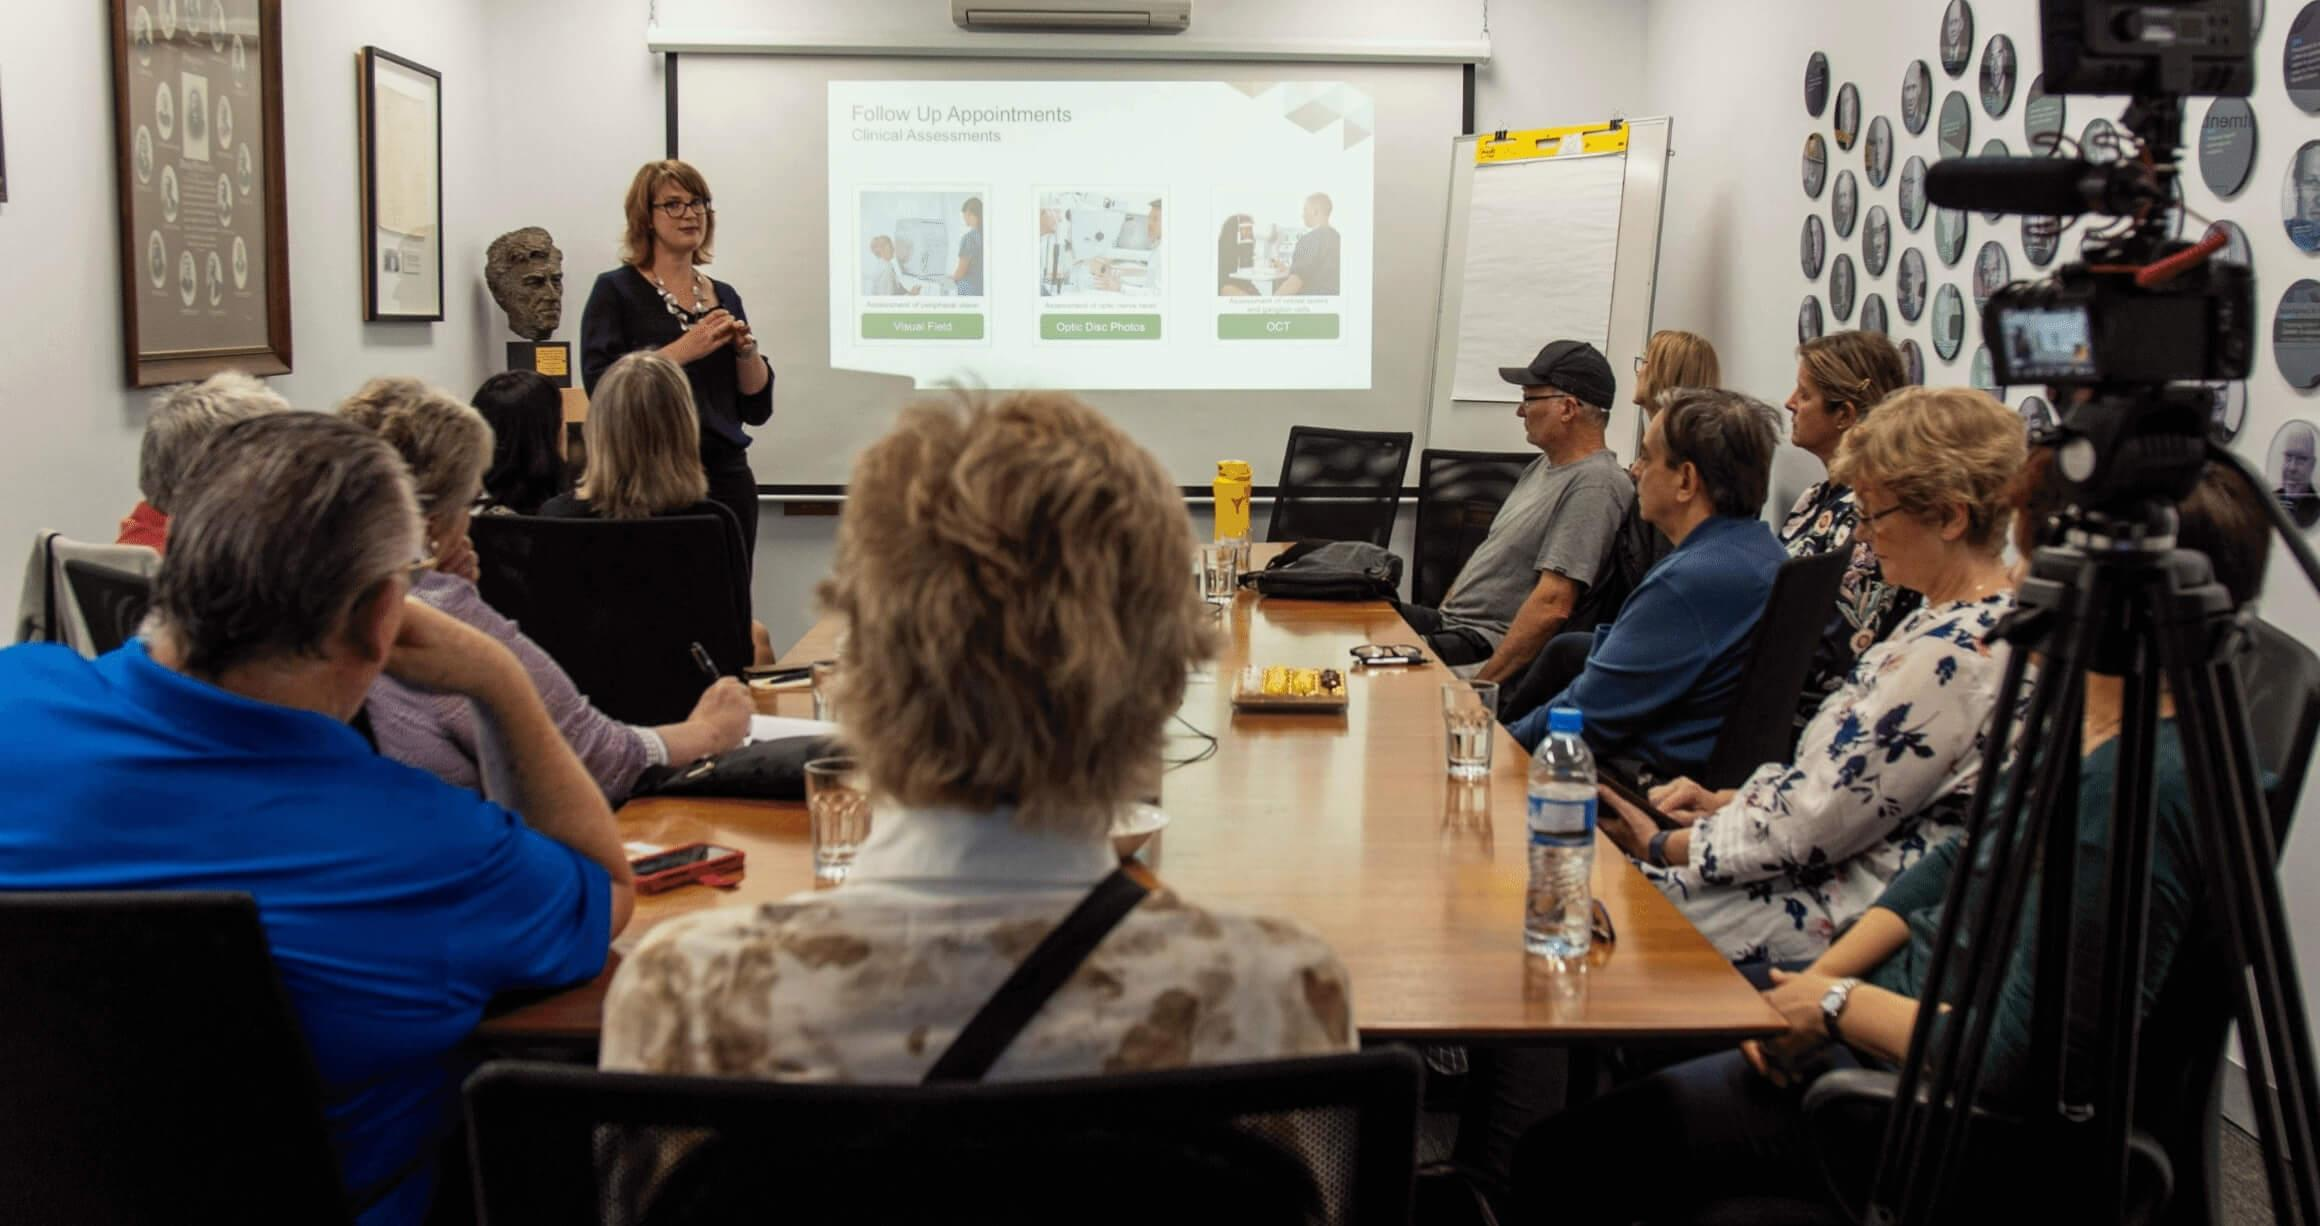 image of boardroom table with several people sitting around watching and listening to a woman give a presentation on a projector screen